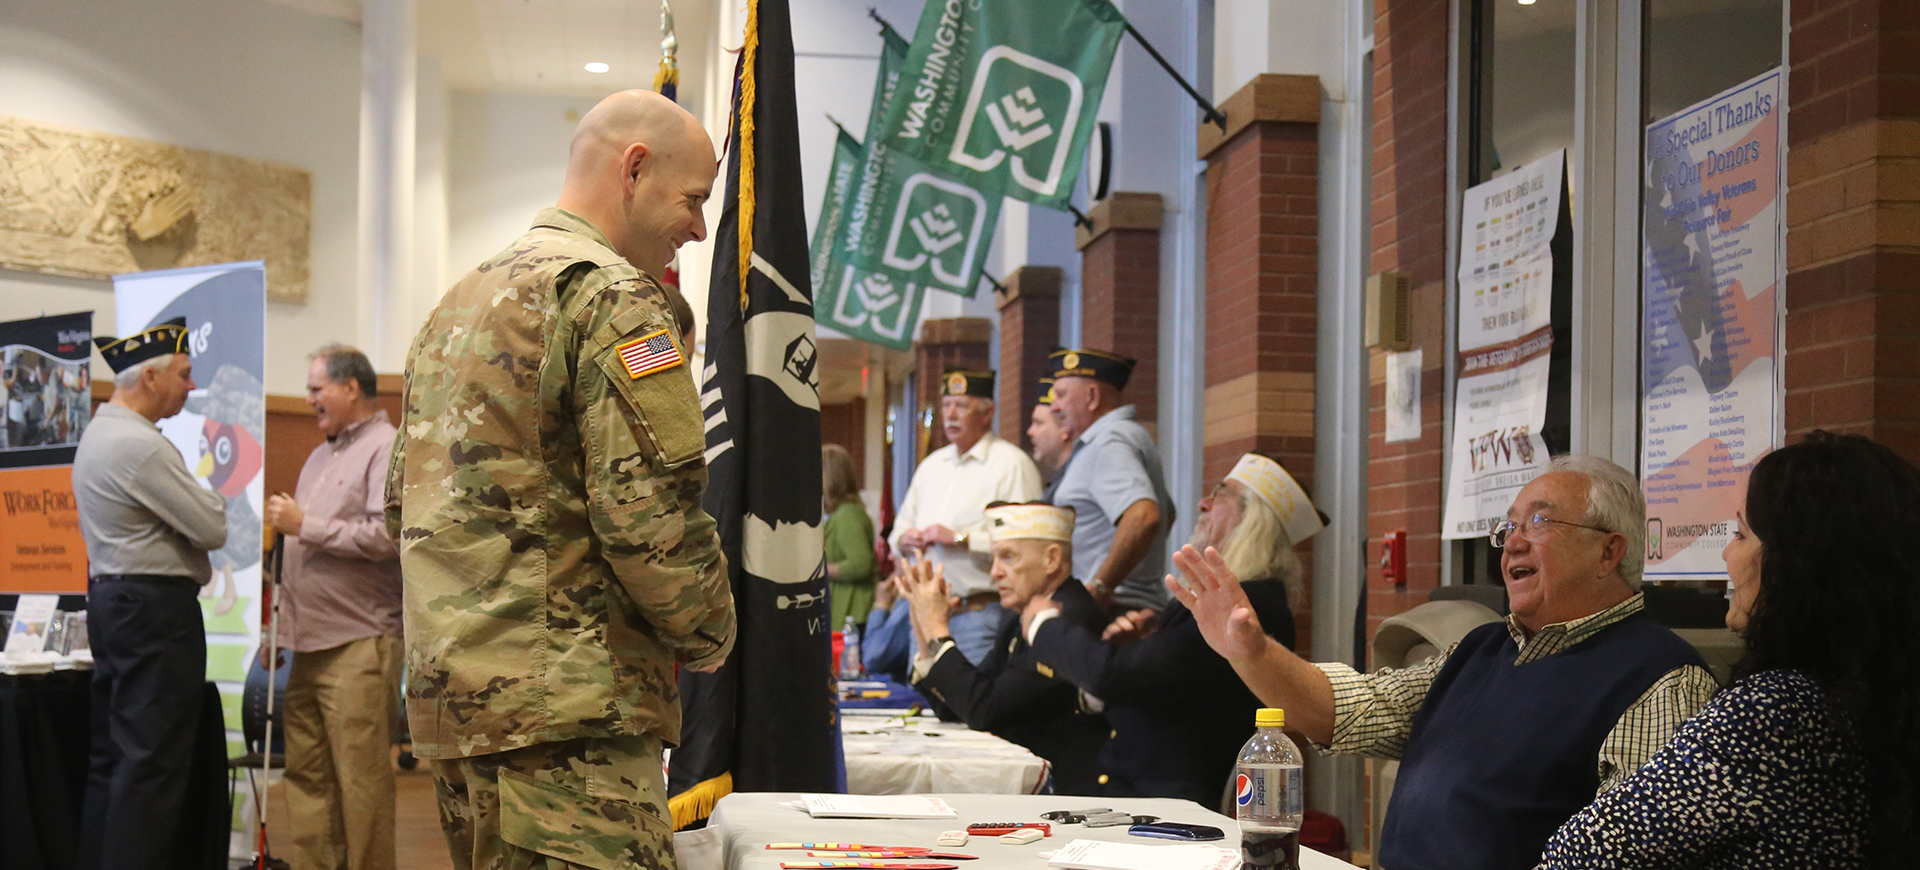 The Mid-Ohio Valley Veterans Outreach (MOVVO) in partnership with Washington State Community College (WSCC), will host a FREE Veterans Resource Fair on Thursday, November 15 from 4 pm to 7 pm.